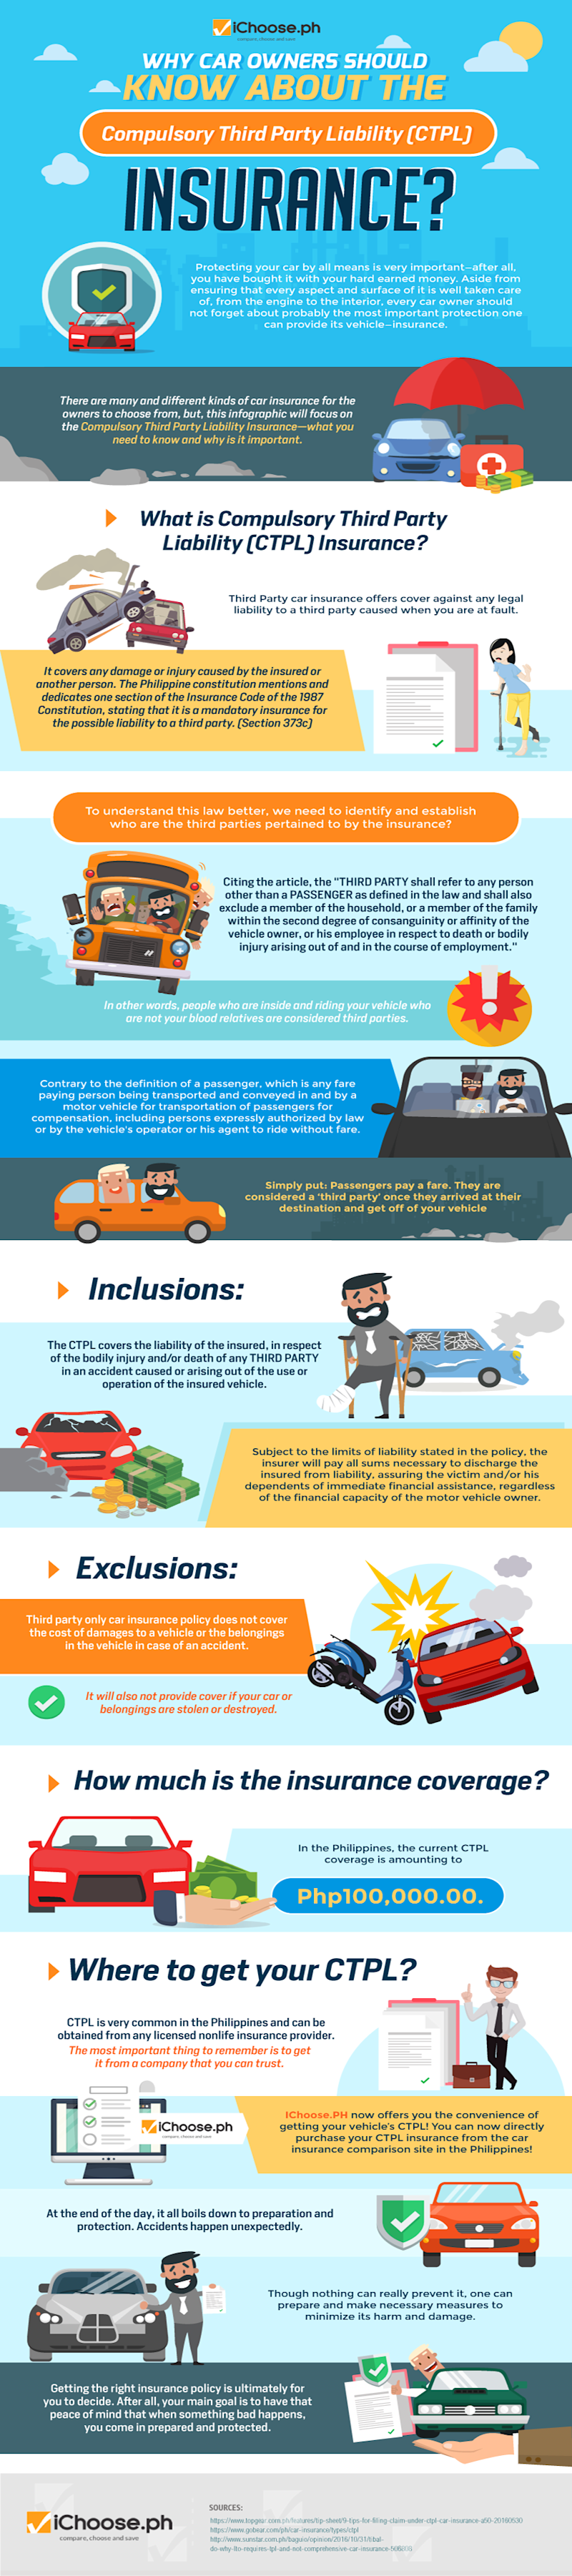 Why car owners should know about the Compulsory Third Party Liability (CPTL) Insurance: Infographic